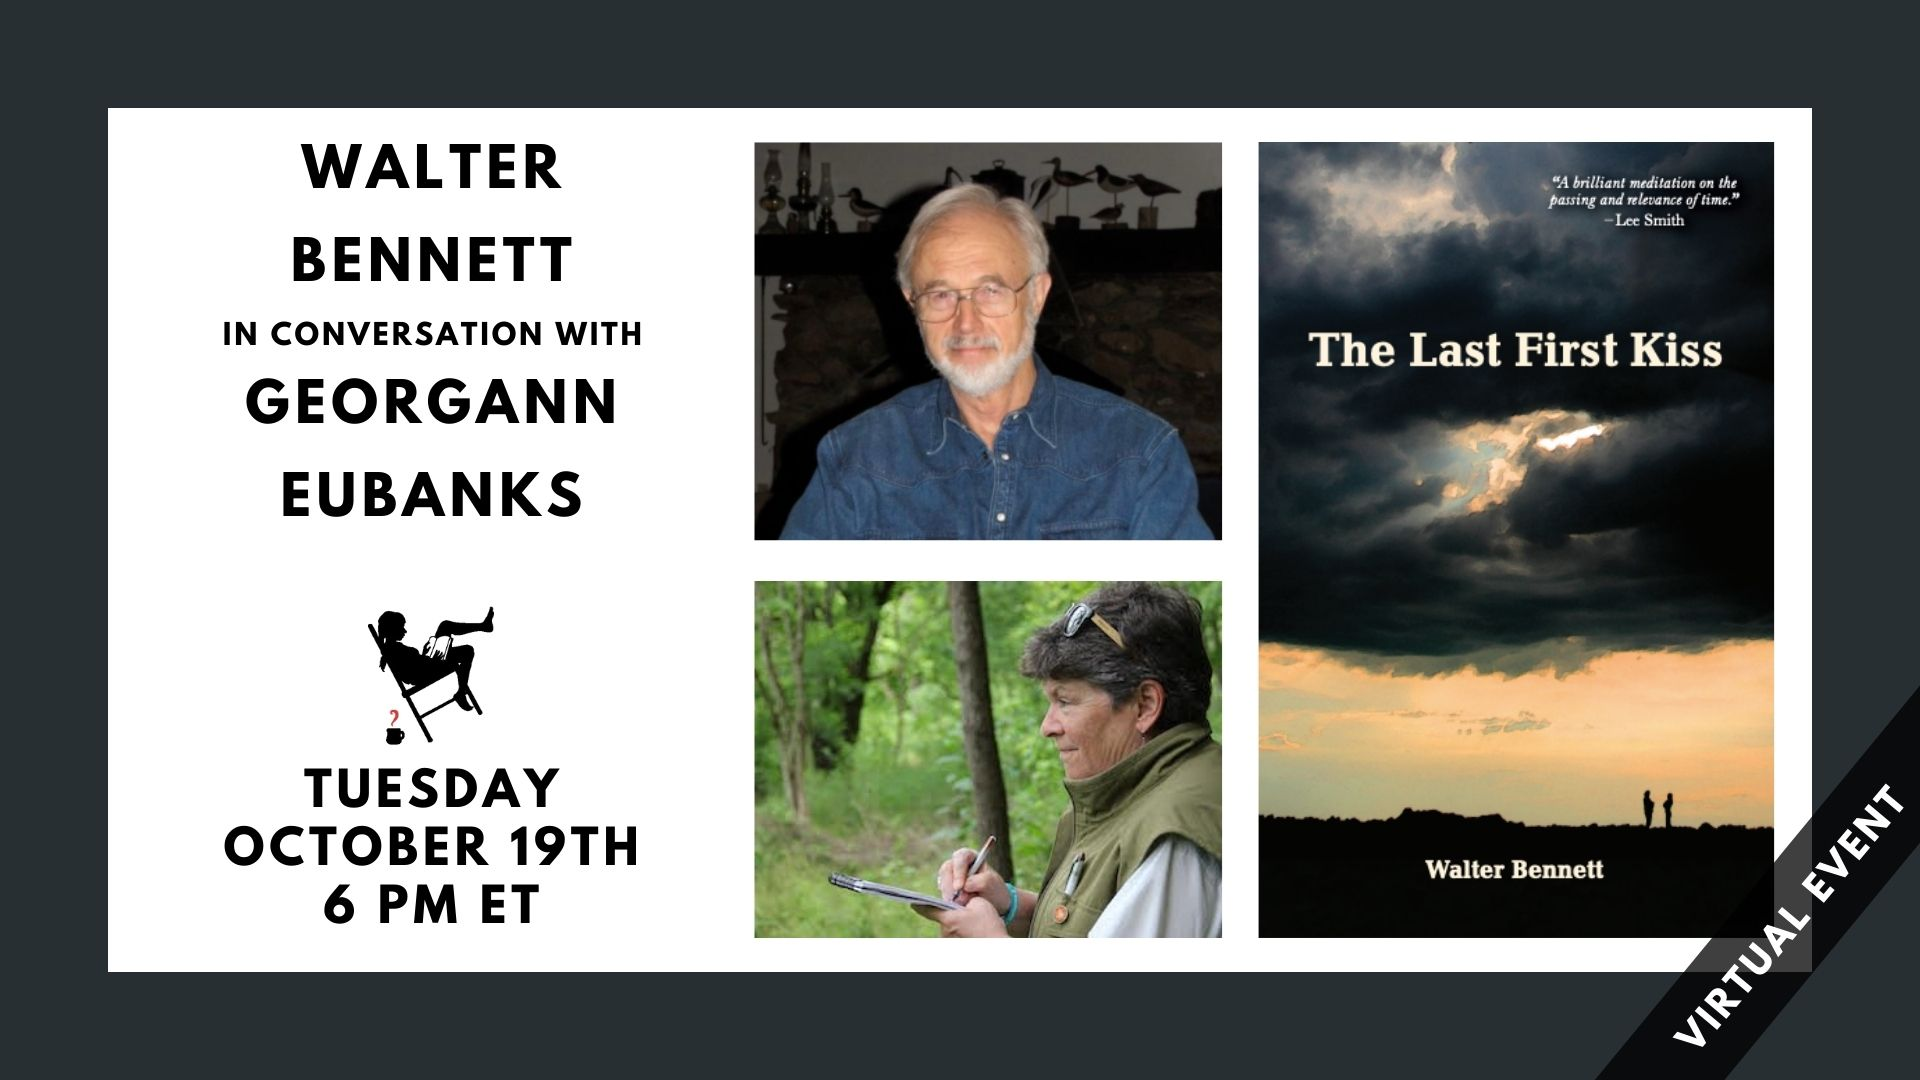 image shows event title, participants, date, time, and photos of participants and featured book cover.